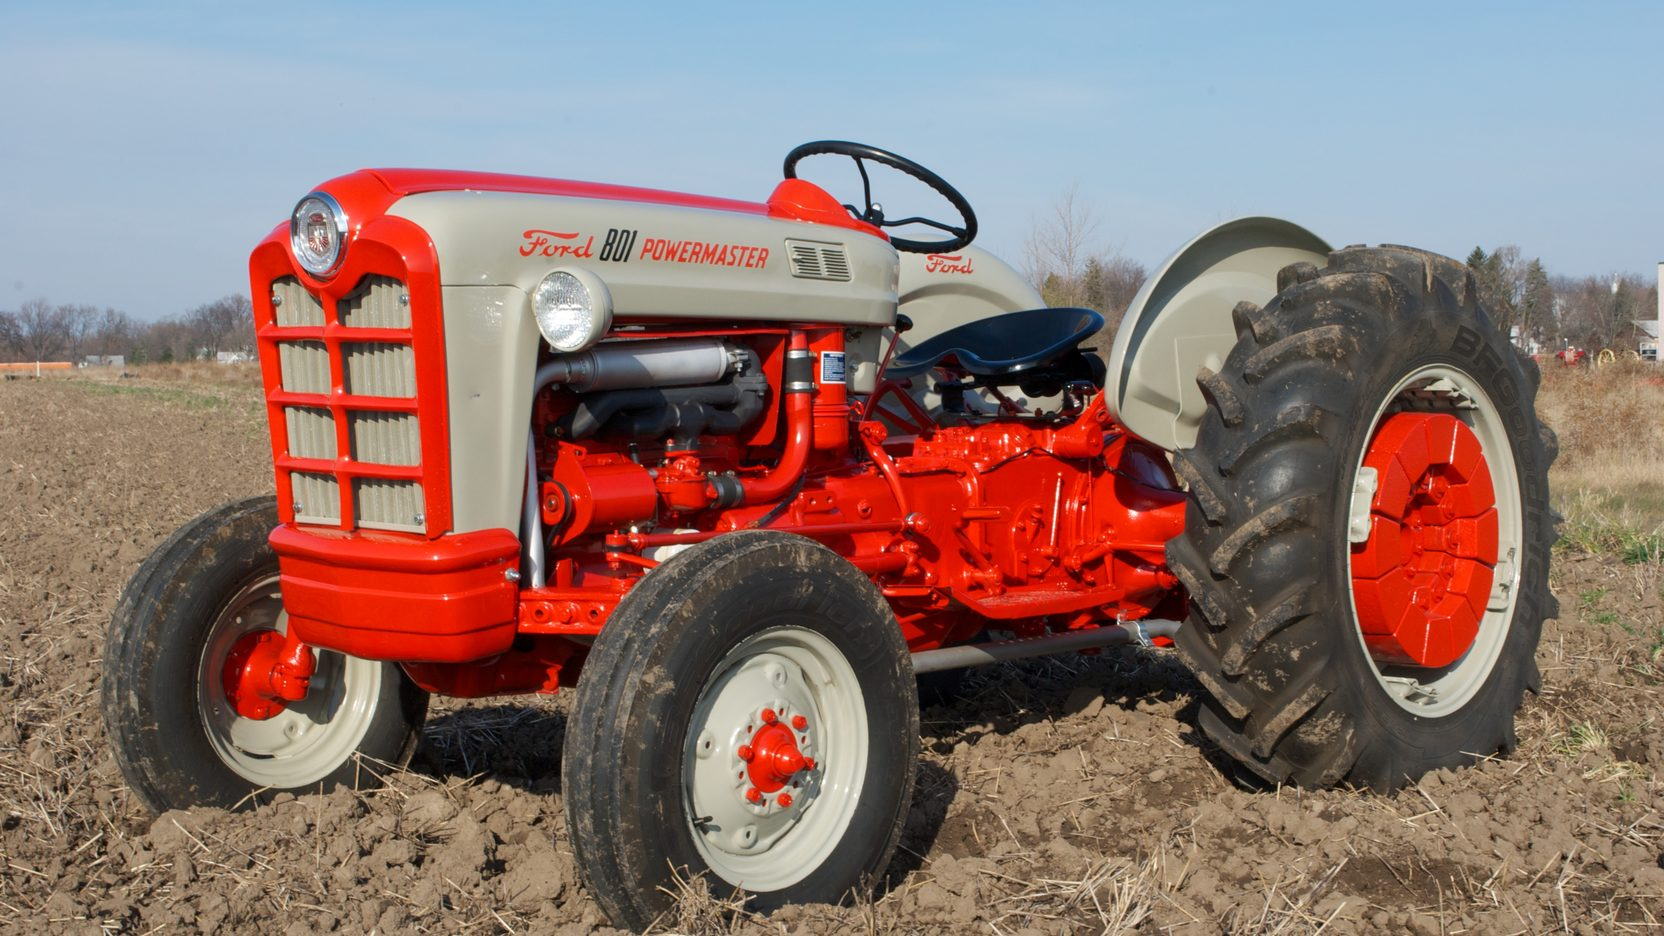 Ford 801 photo - 8